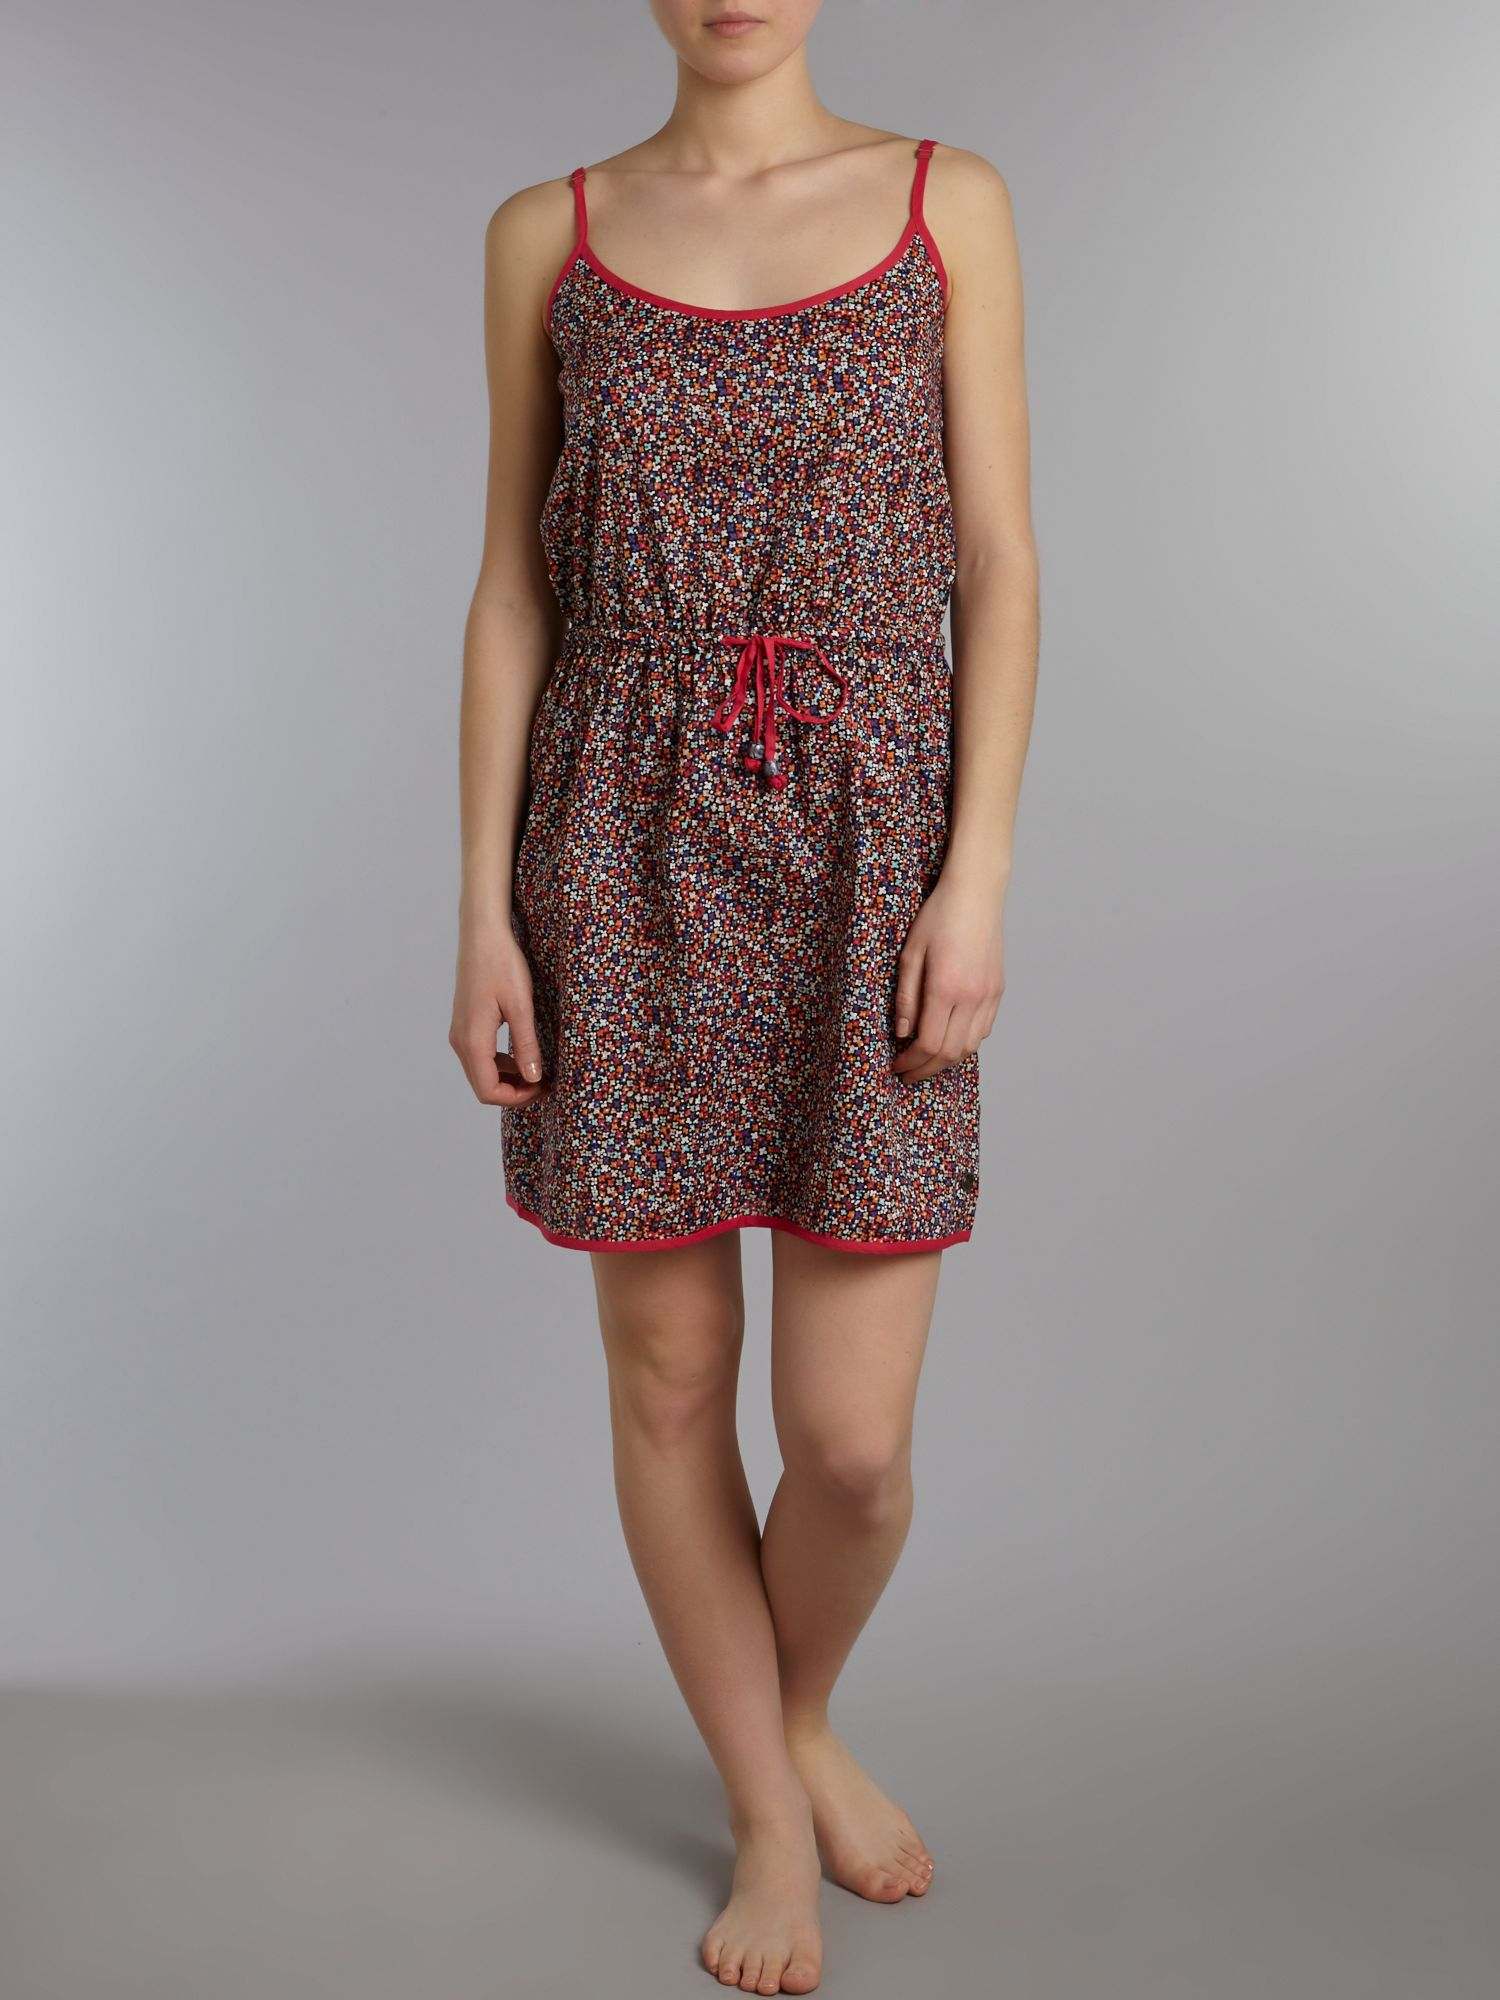 Roxy Synthetic Floral Flurry Ditsy Print Panea Dress in Black